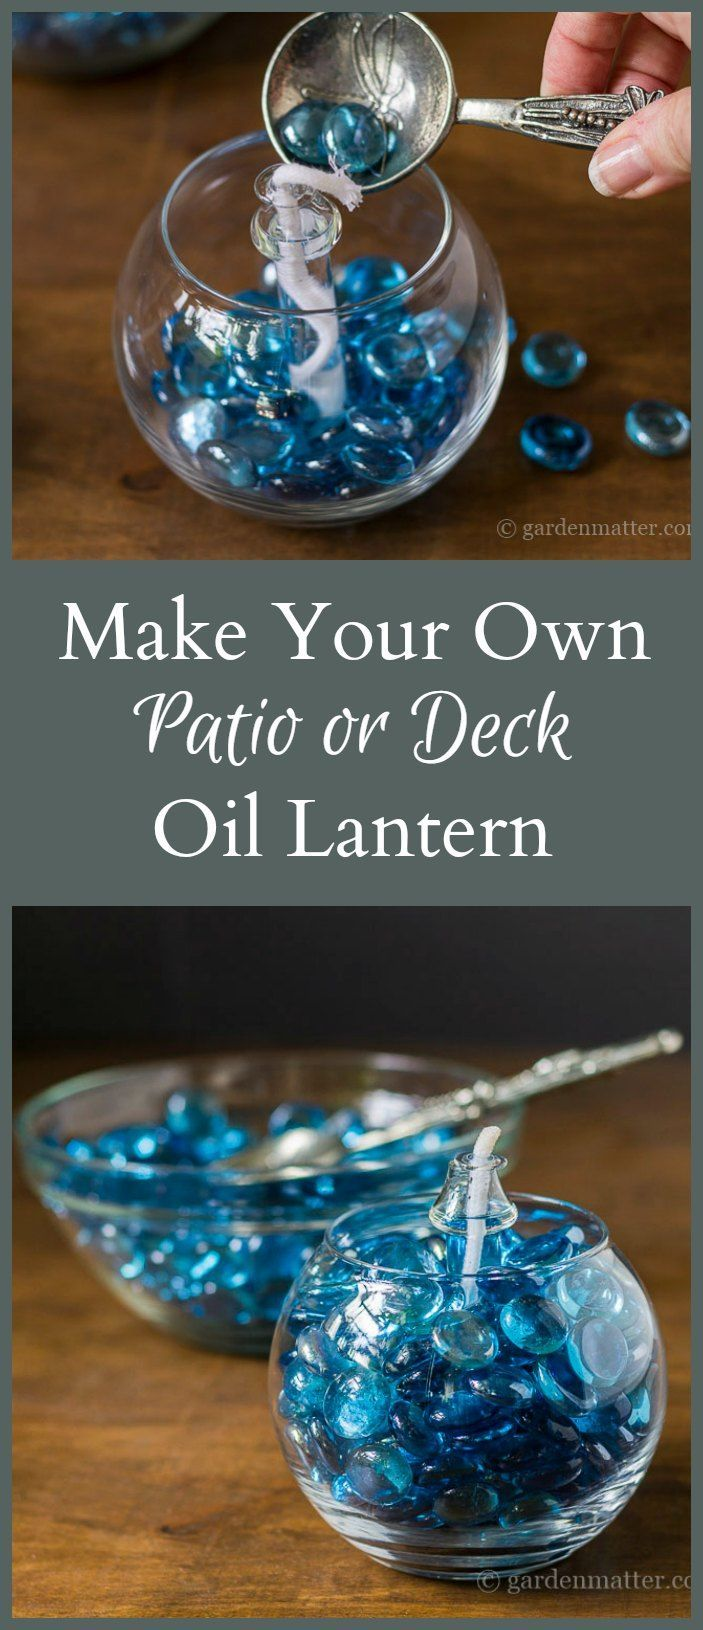 Learn How To Make An Inexpensive Patio Oil Lantern With An Lamp Insert, A  Dollar